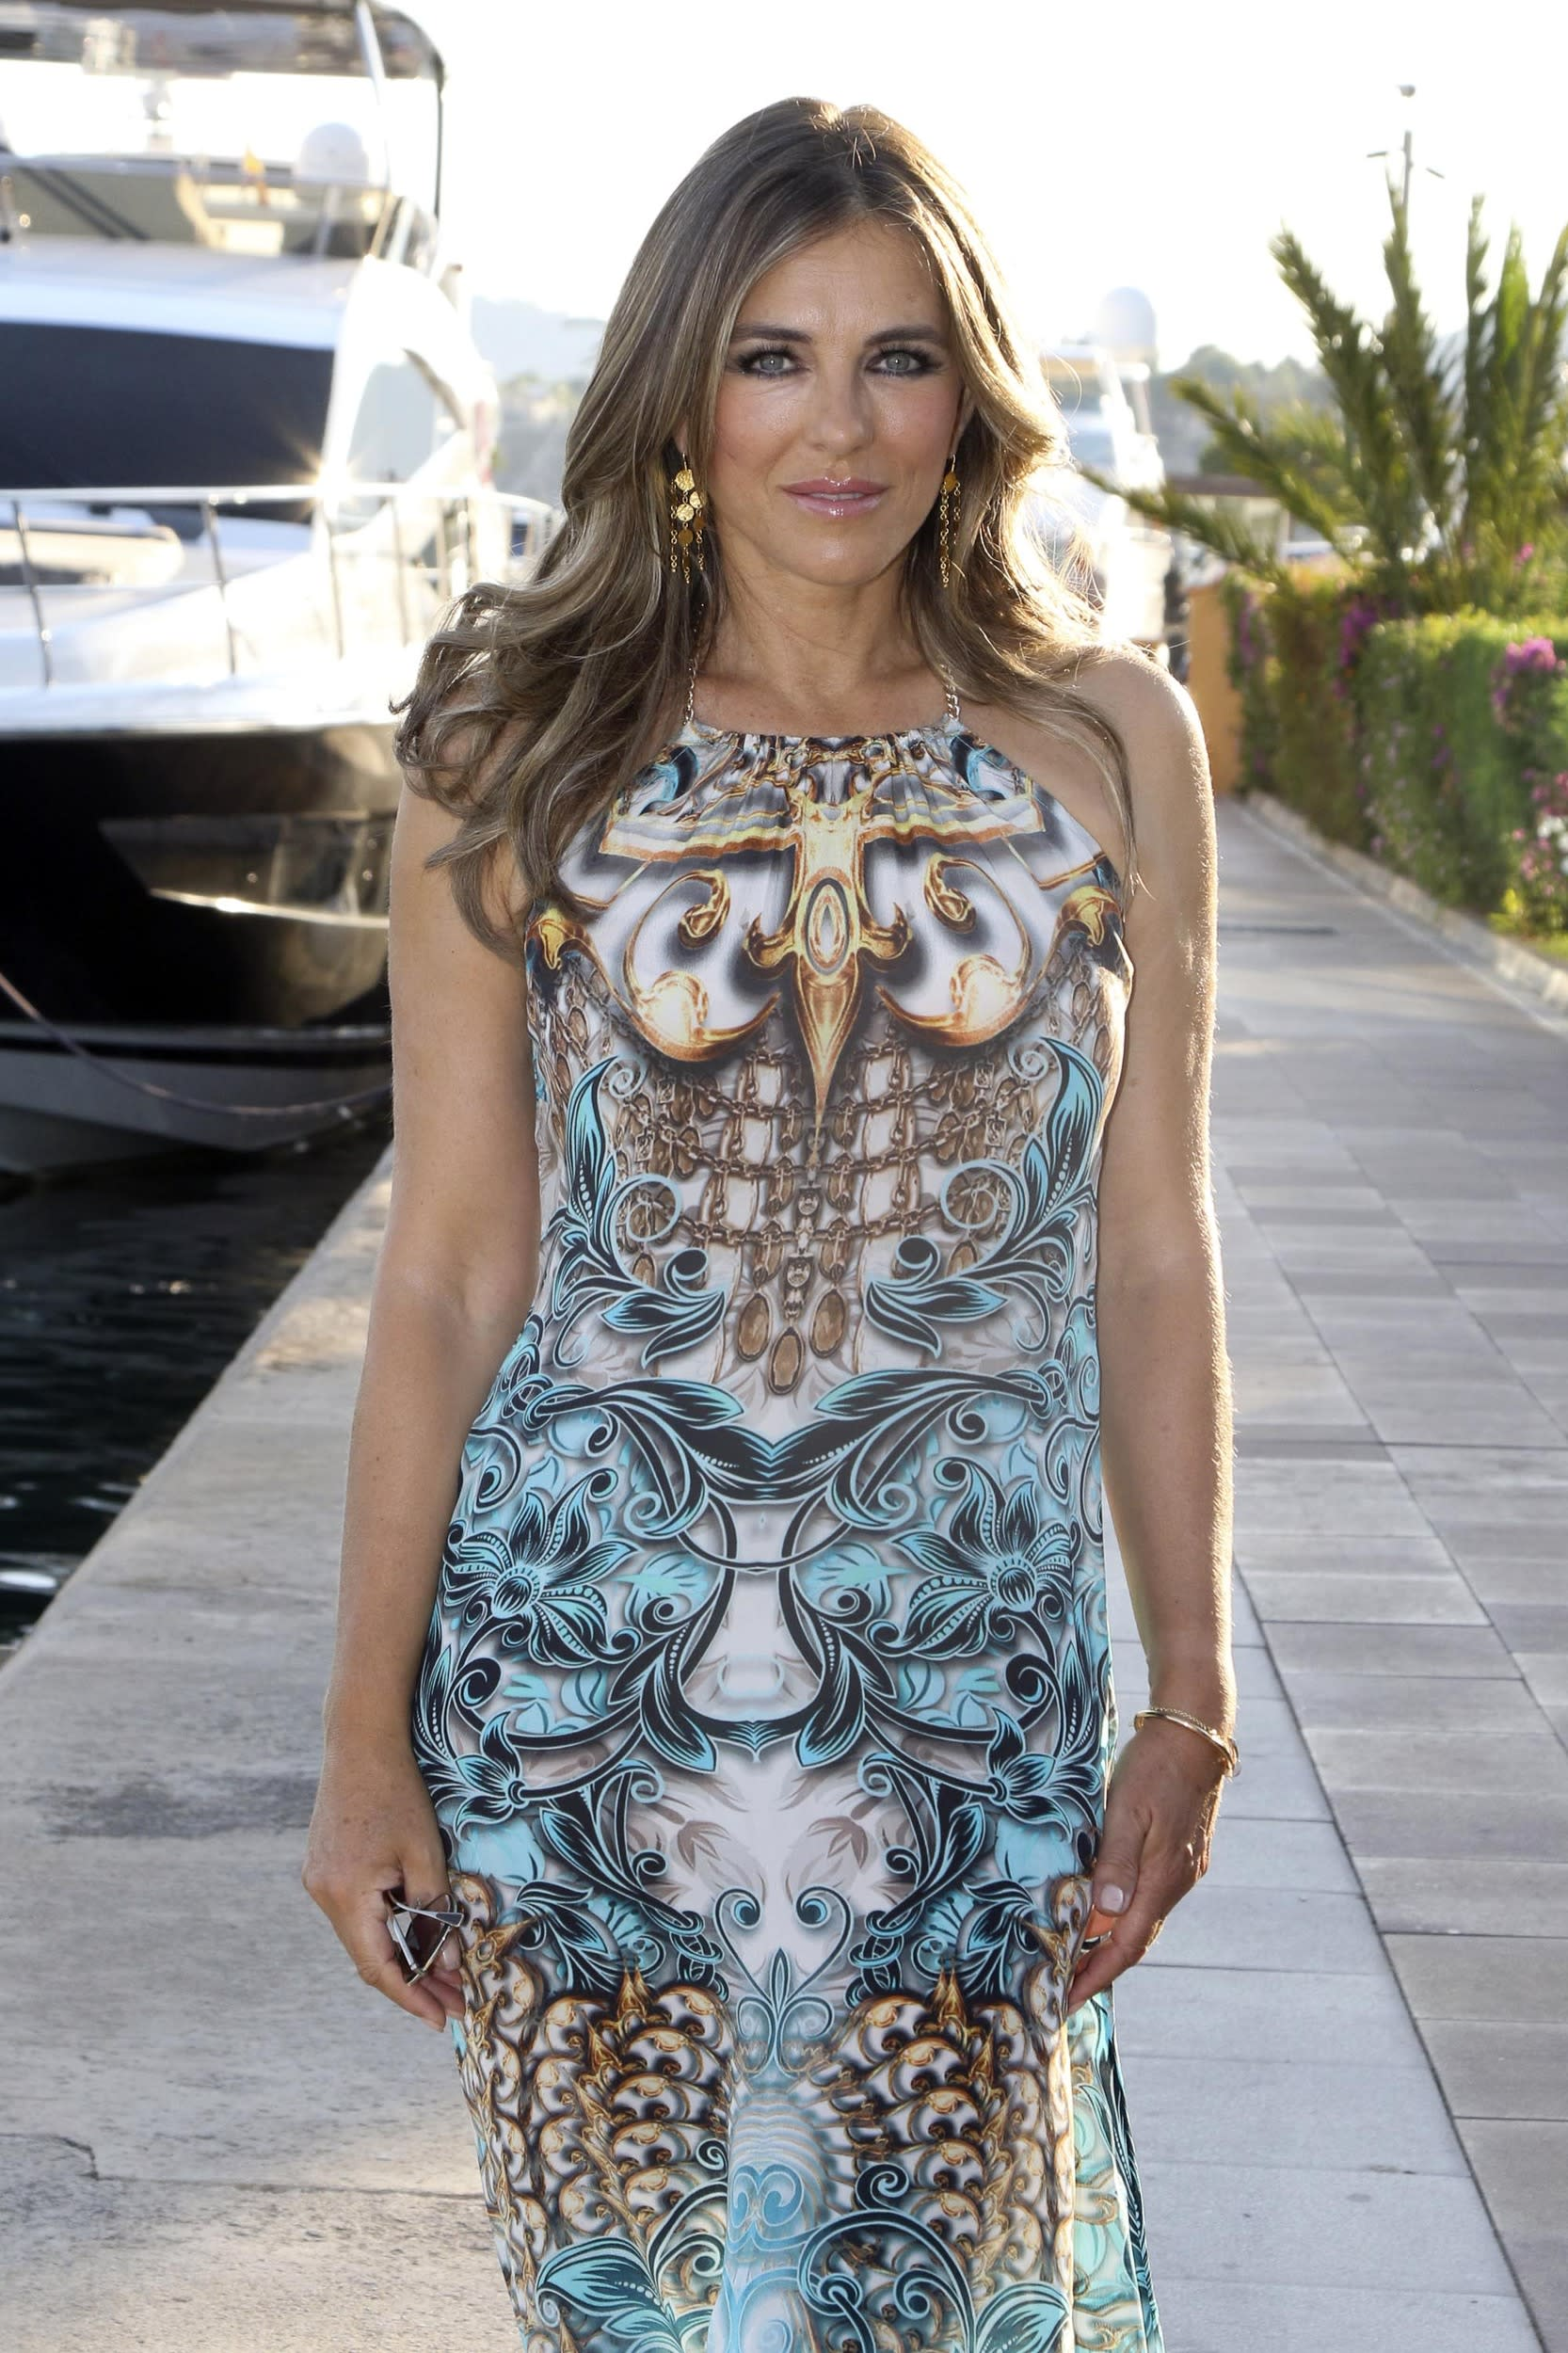 PALMA DE MALLORCA, SPAIN - JULY 25:  Elisabeth Hurley attends the opening of her pop-up shop at Puerto Portals and present her new 'Elizabeth Hurley Beach' collection on July 25, 2018 in Palma de Mallorca, Spain.  (Photo by Europa Press/Europa Press via Getty Images)